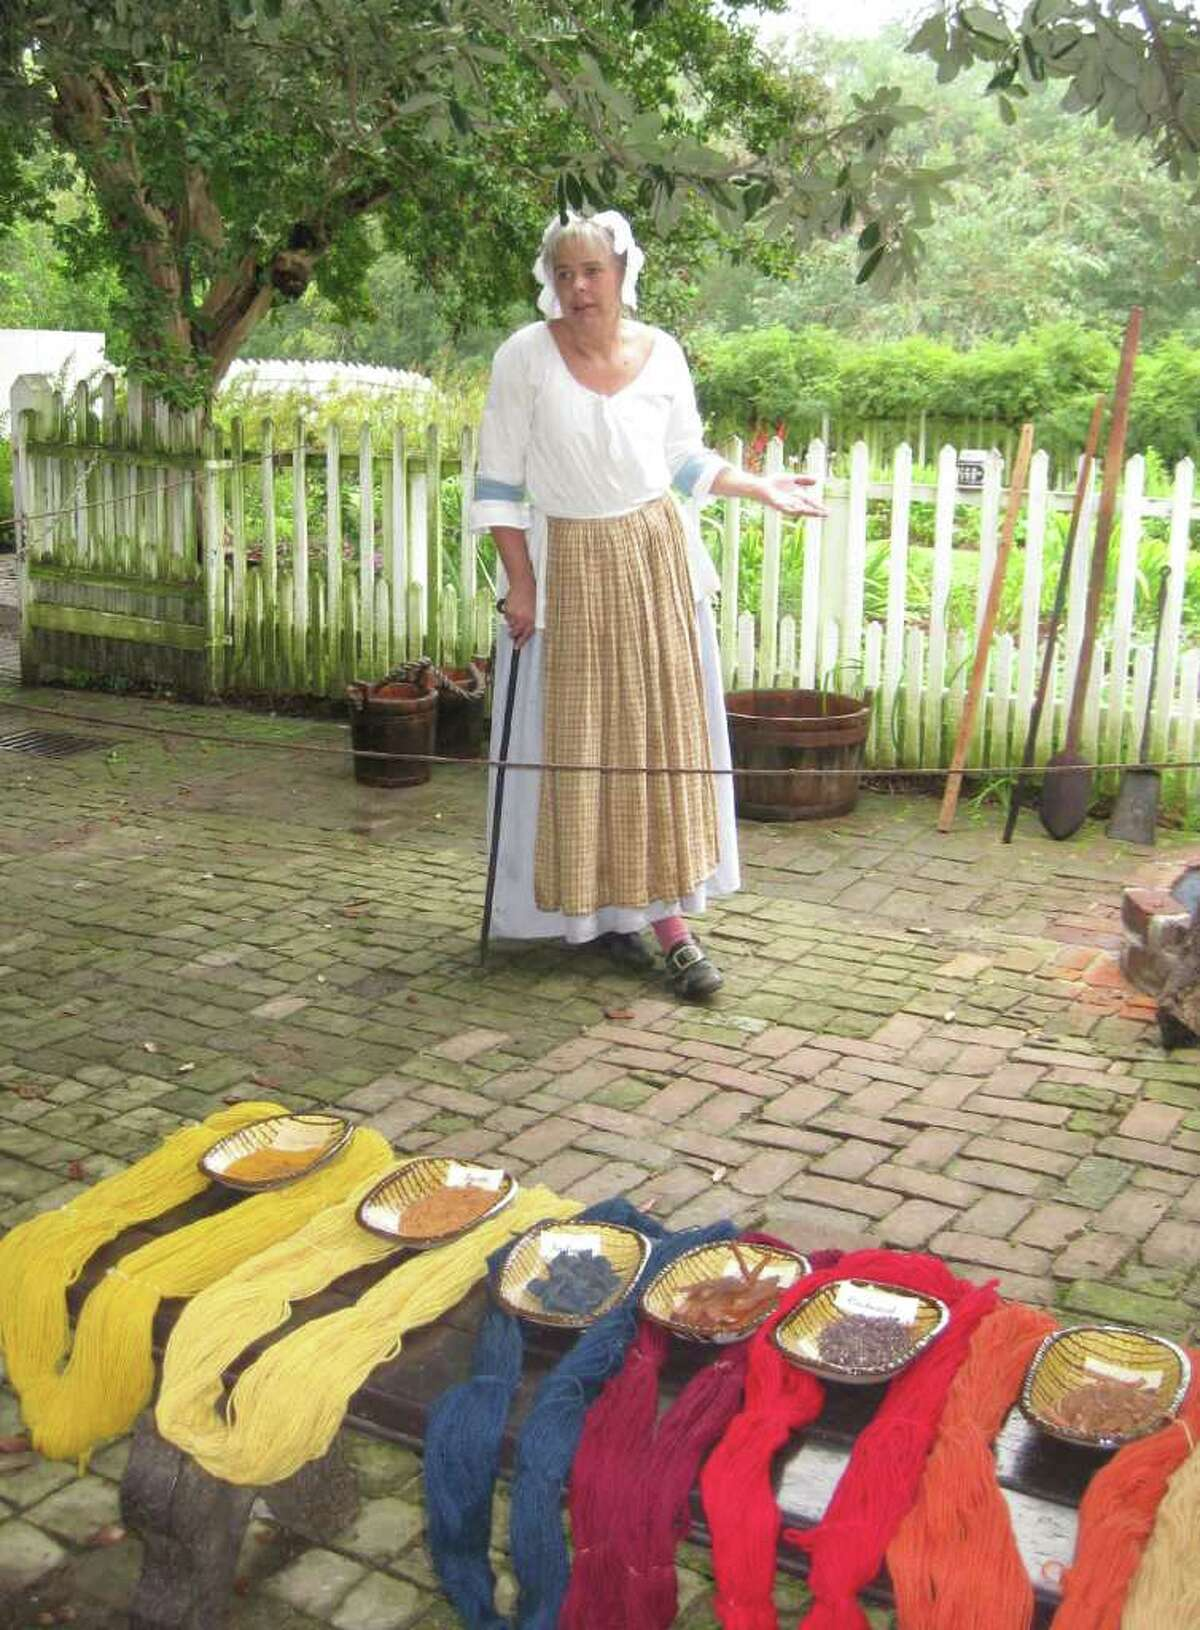 A Colonial Williamsburg dye mistress shows how 18th-century craftspeople colored fabric.